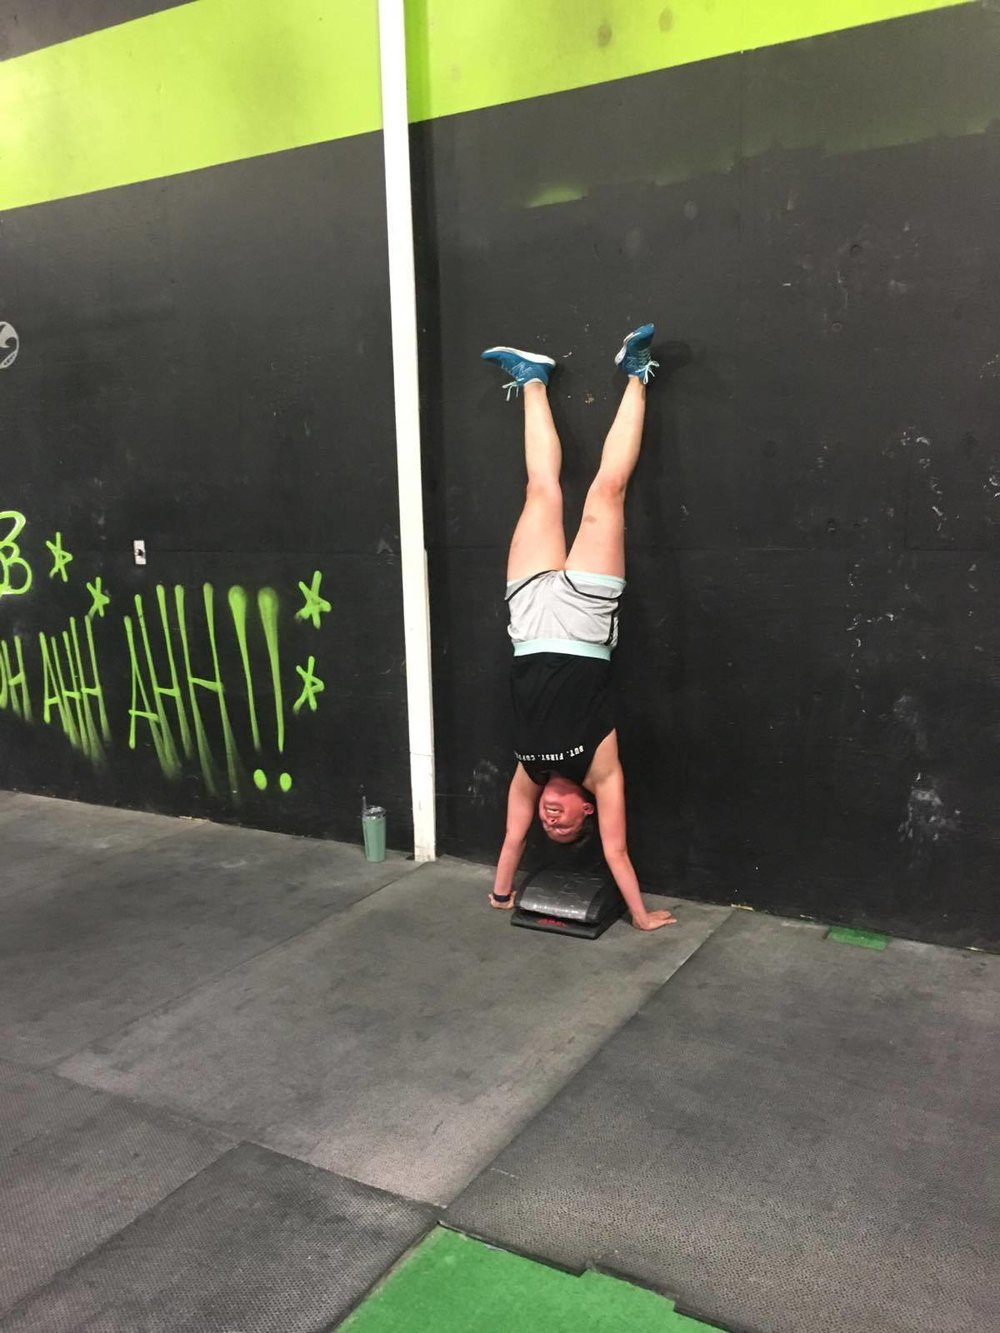 She got her handstand!!! GOAT work pays off :)